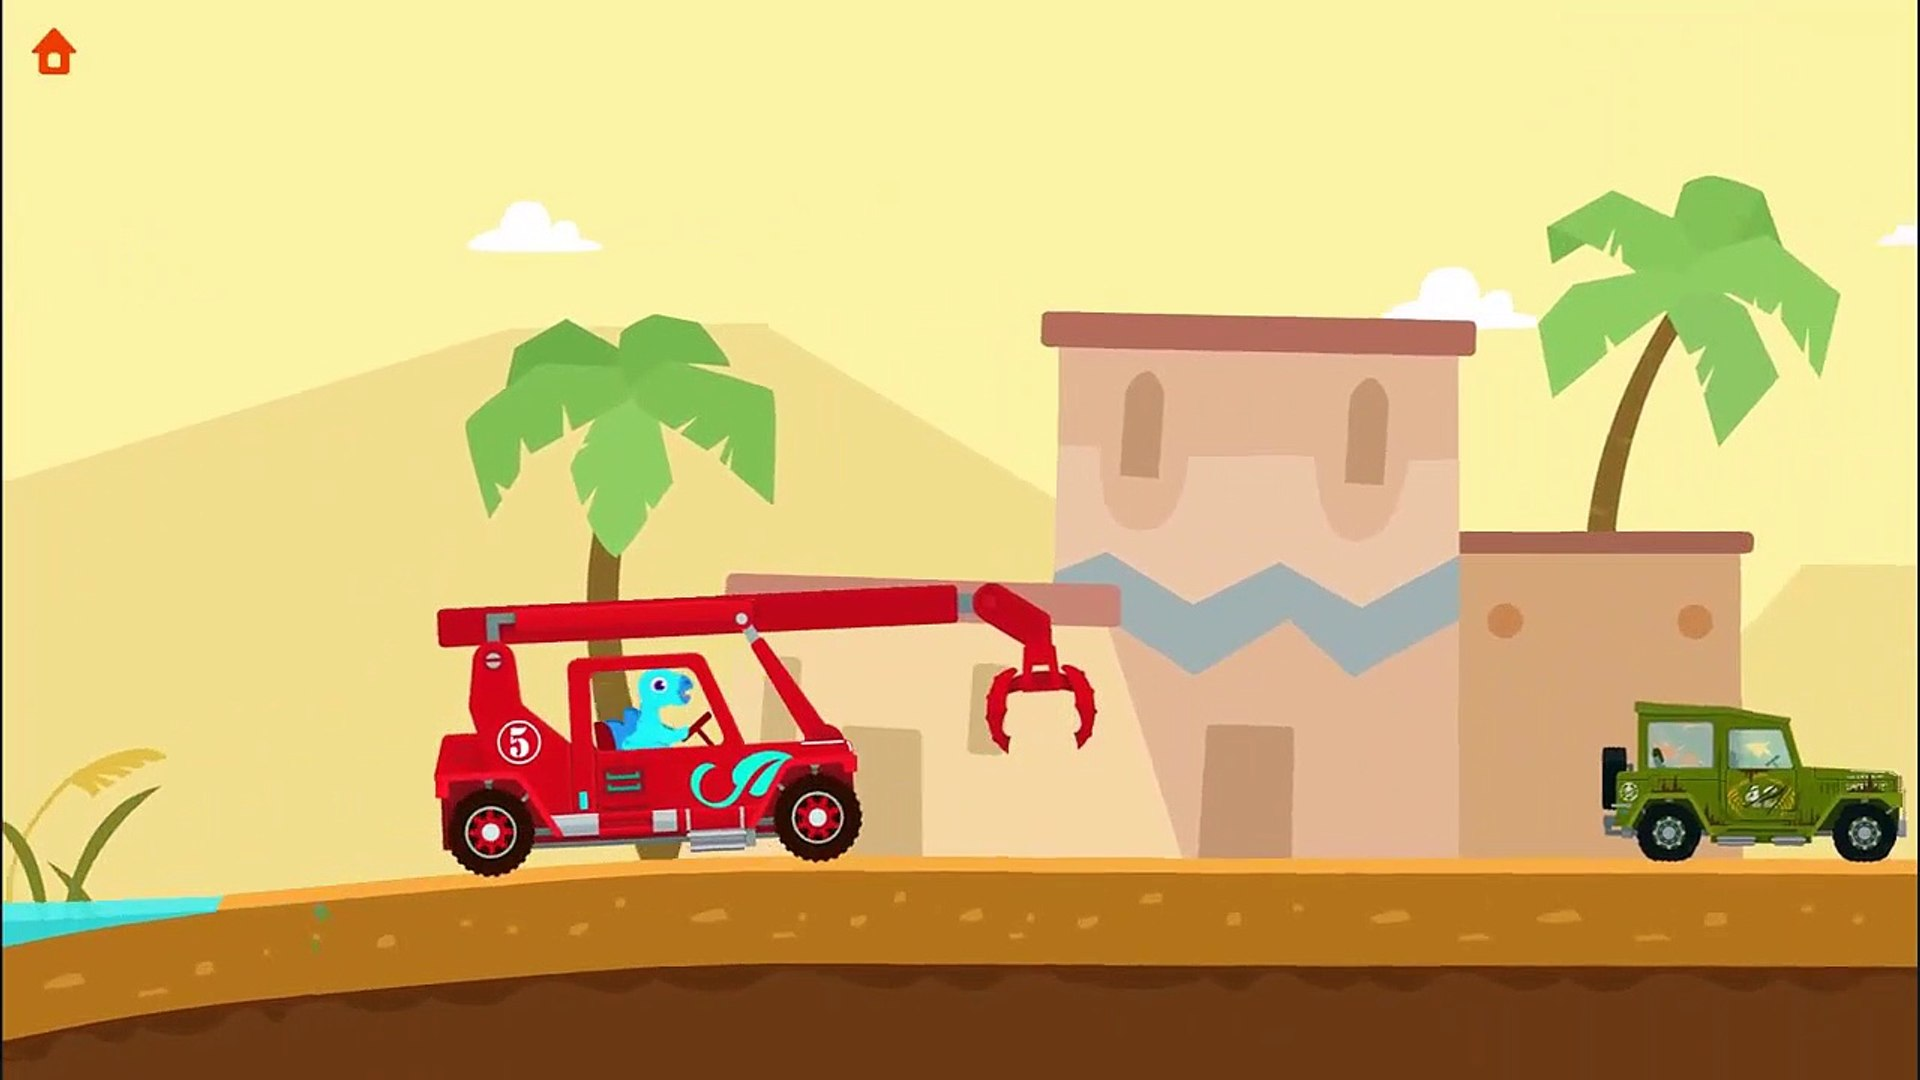 Dinosaur Rescue Tractors - Kids Learn About Rescue Vehicles asd- Education